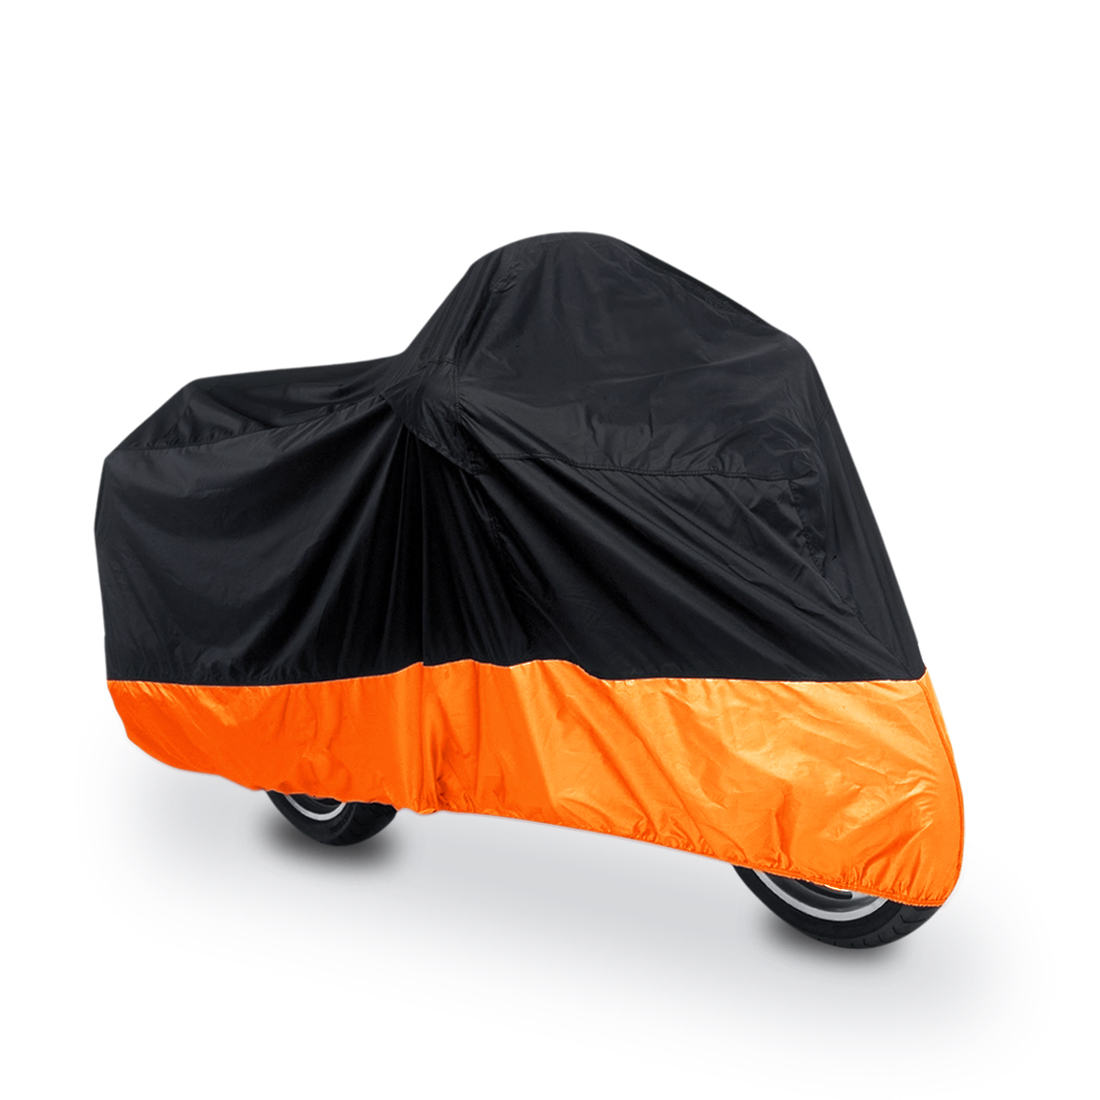 Black+Orange Motorcycle Cover For Harley Davidson Heritage Softail Classic FLSTC